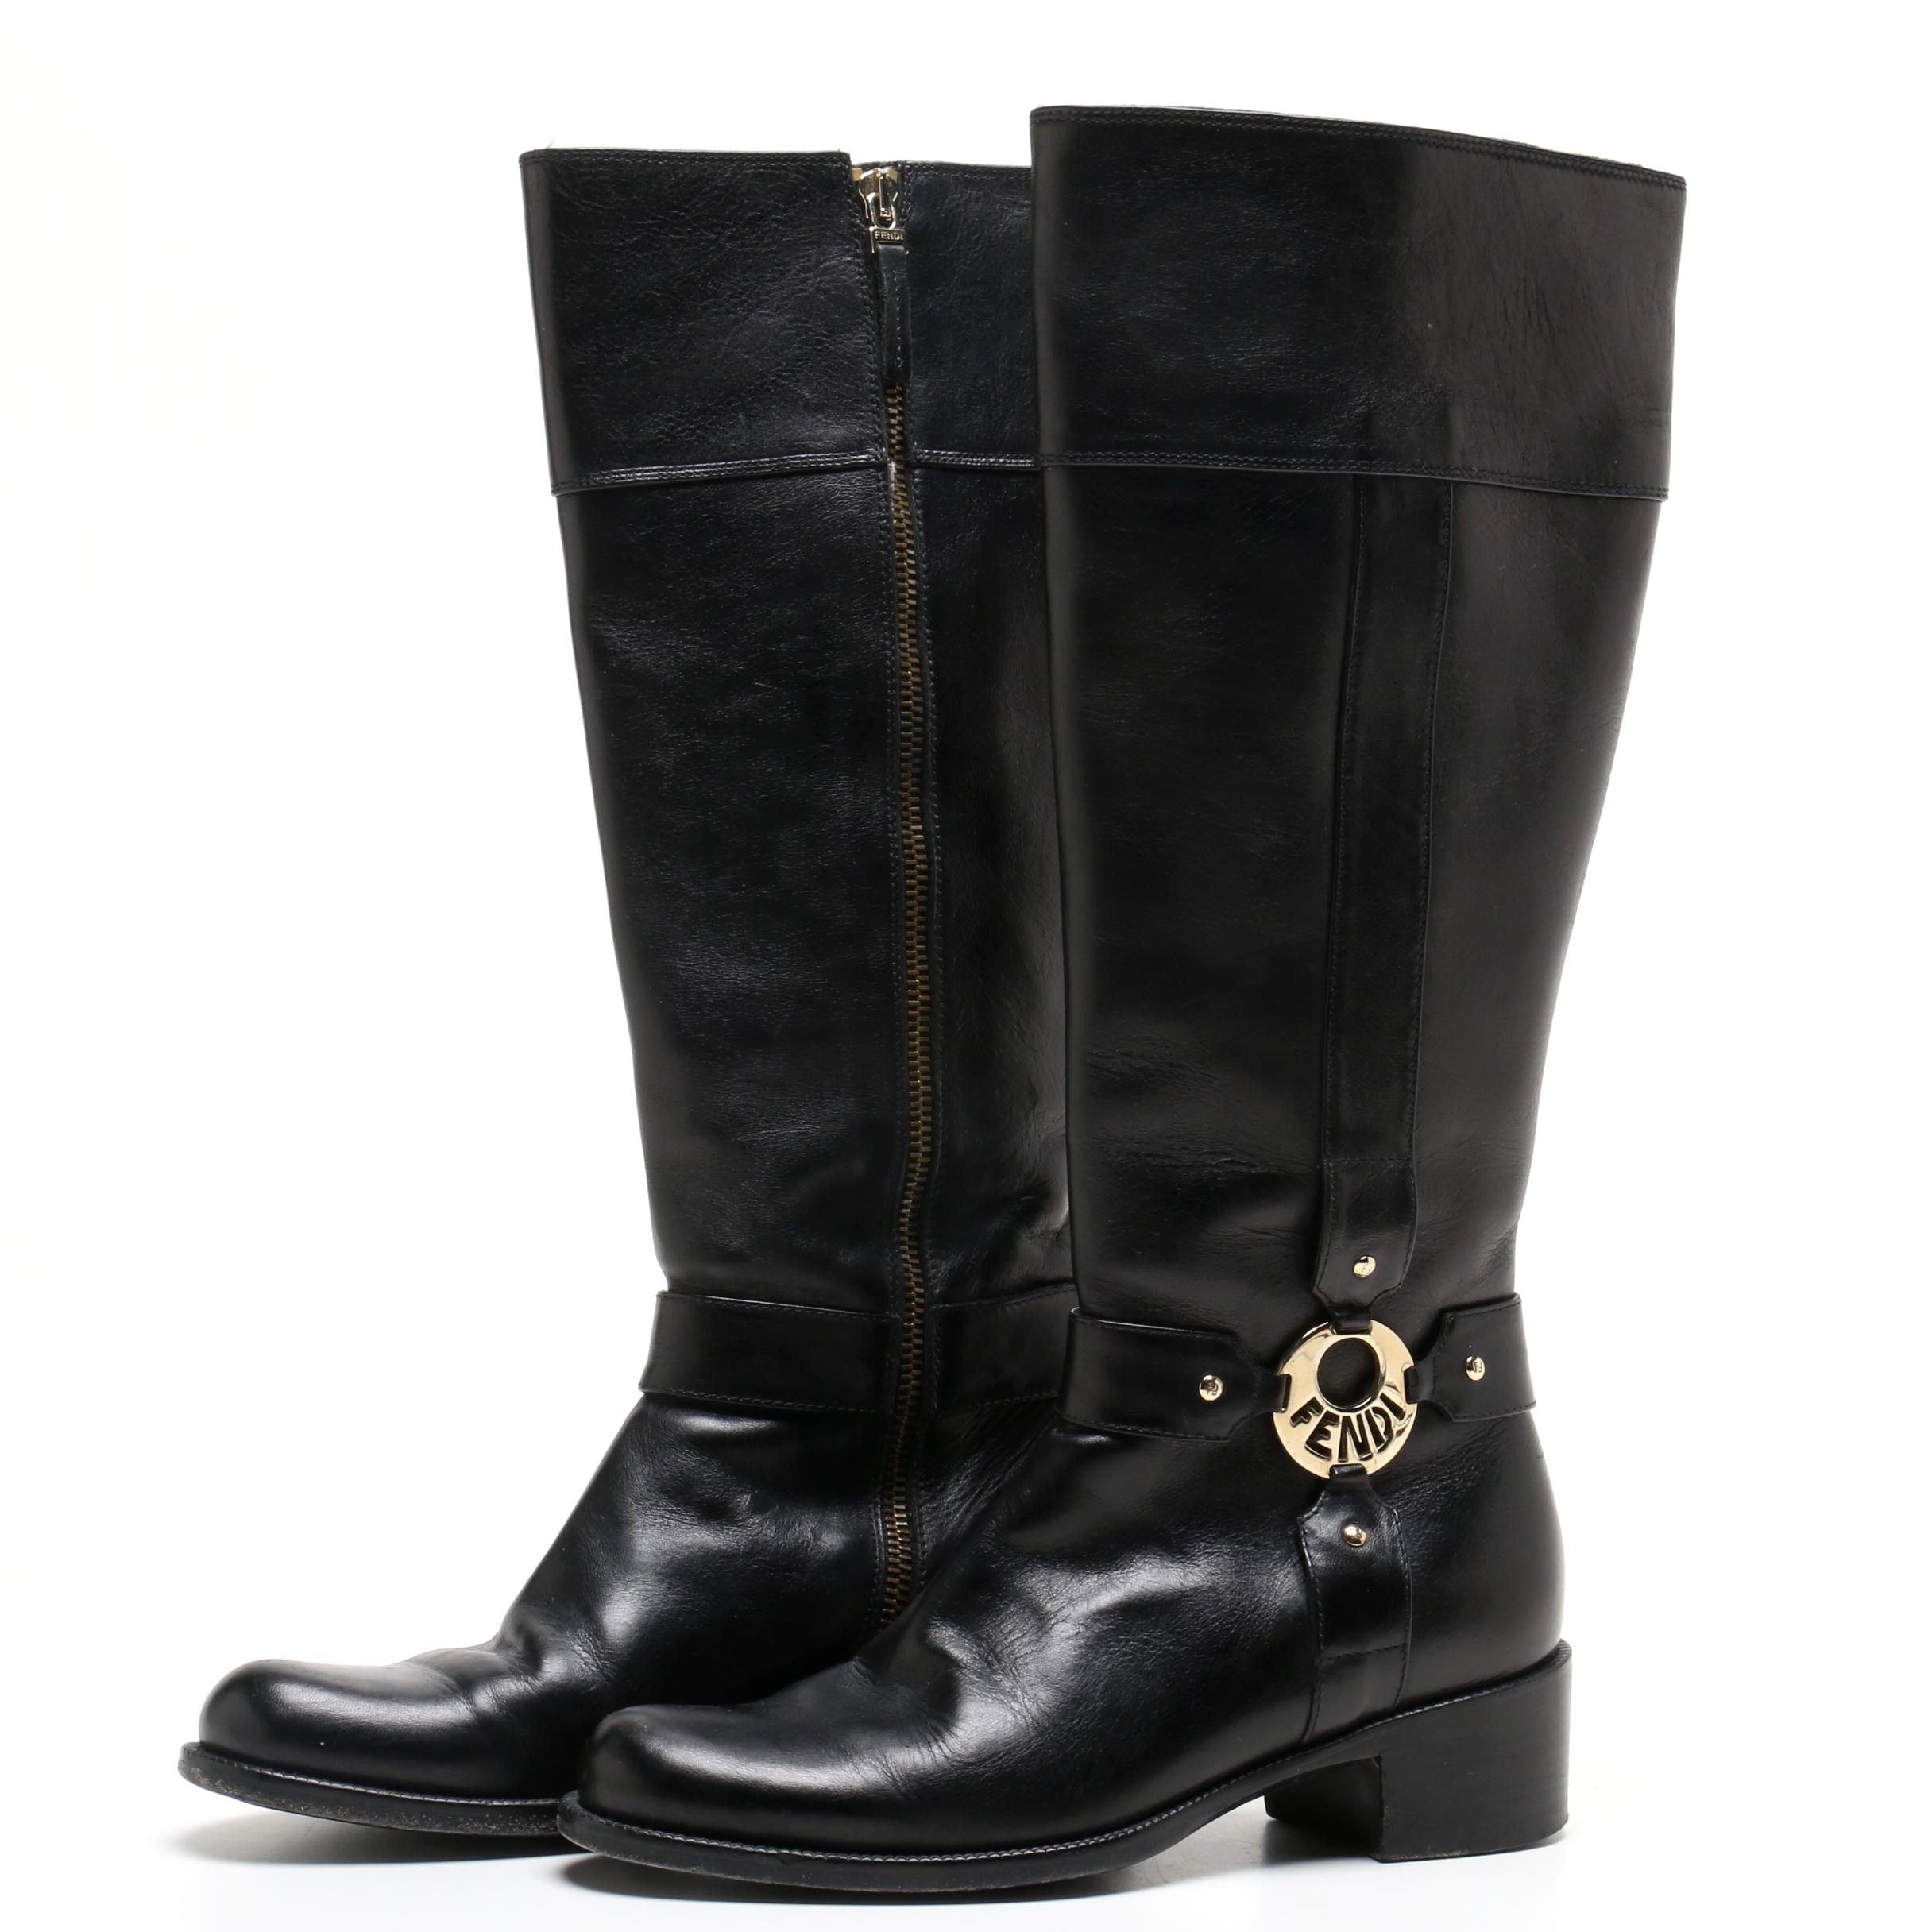 Fendi Black Leather Riding Style Knee-High Boots